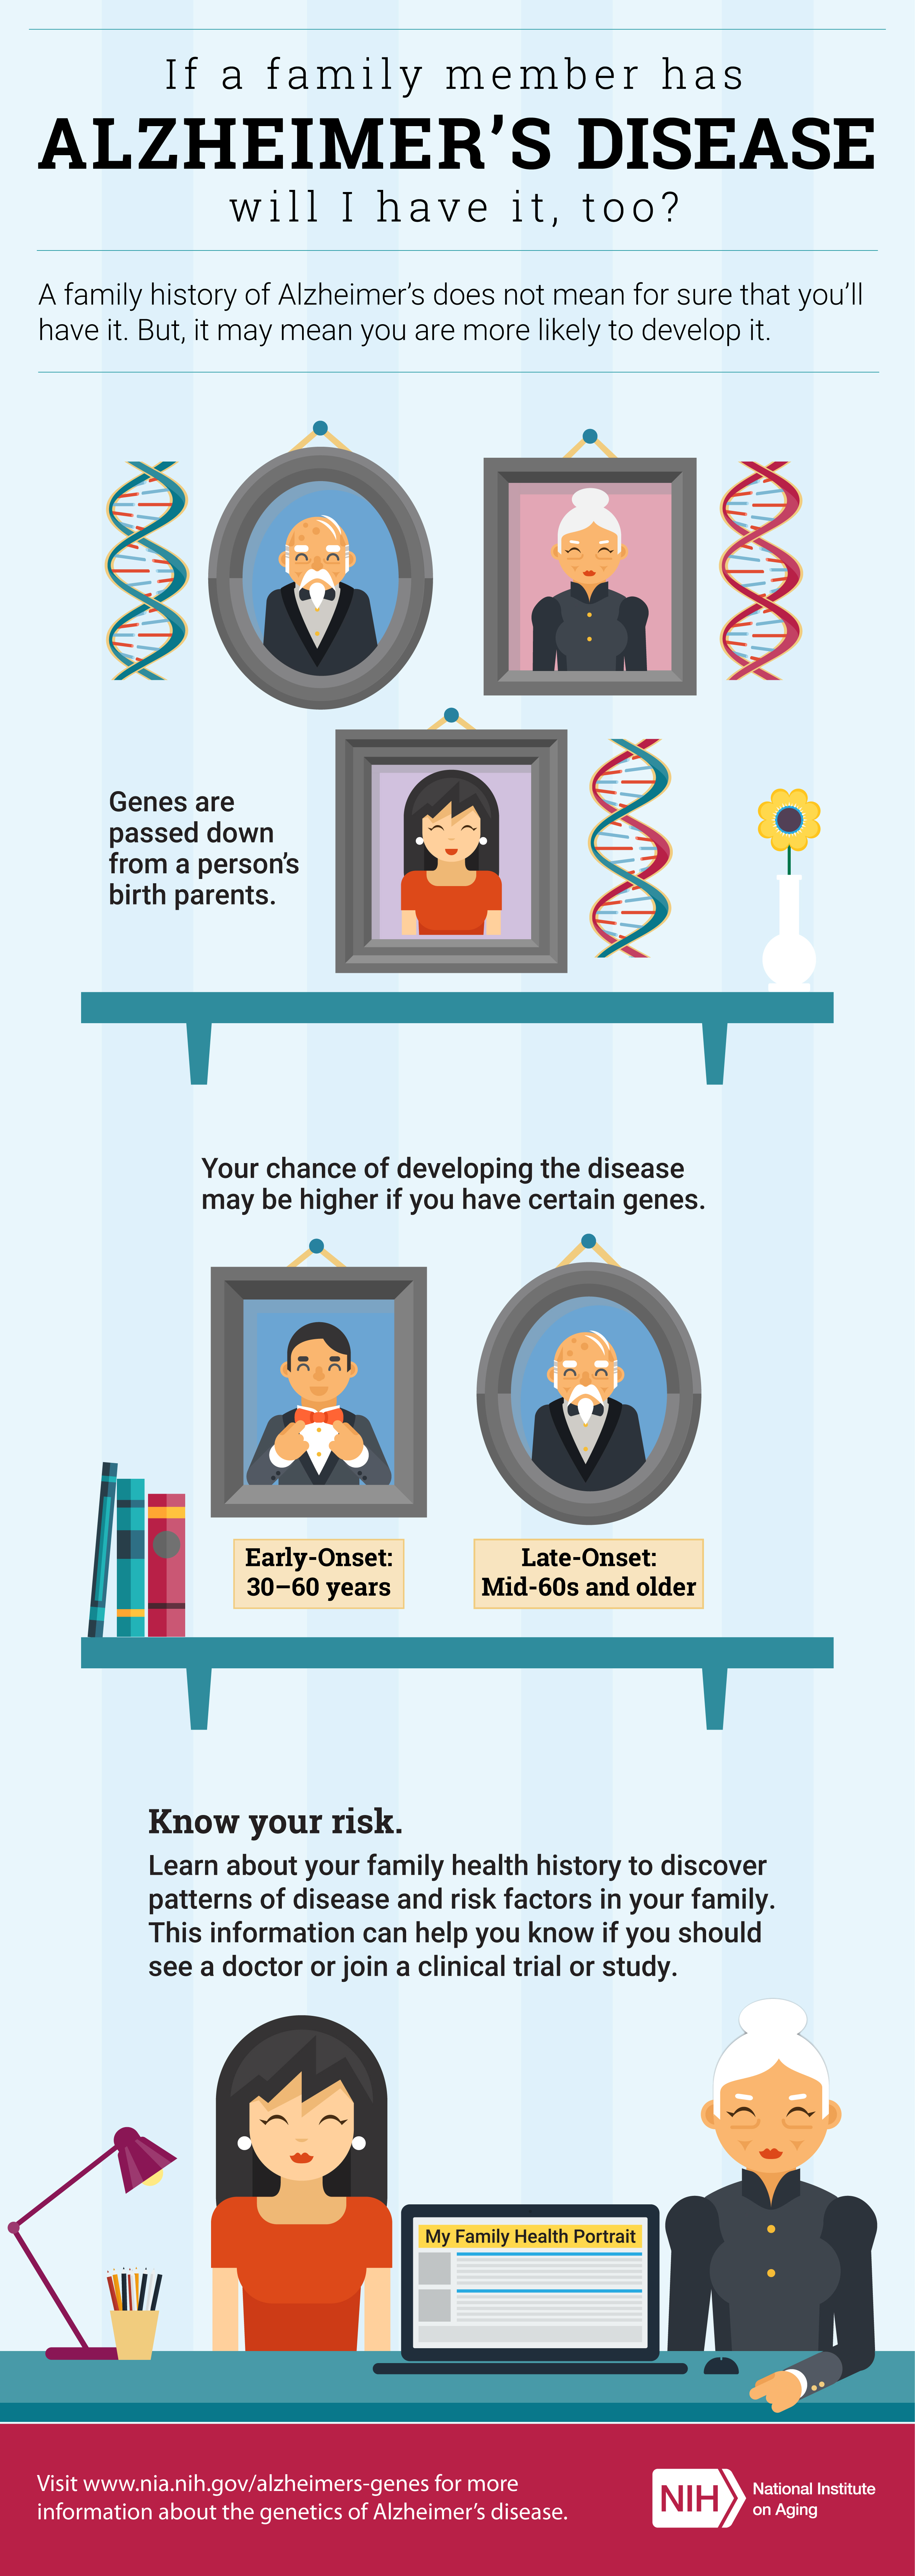 If a family member has Alzheimer's Disease, will I have it, too? A family history of Alzheimer's does not mean for sure that you'll have it. But, it may mean you are more likely to develop it. Genes are passed down from a person's birth parents. Your chance of developing the disease may be higher if you have certain genes. Learn about your family health history to discover patterns of disease and risk factors in your family. This info can help you know if you should see a doctor or join a clinical trial.